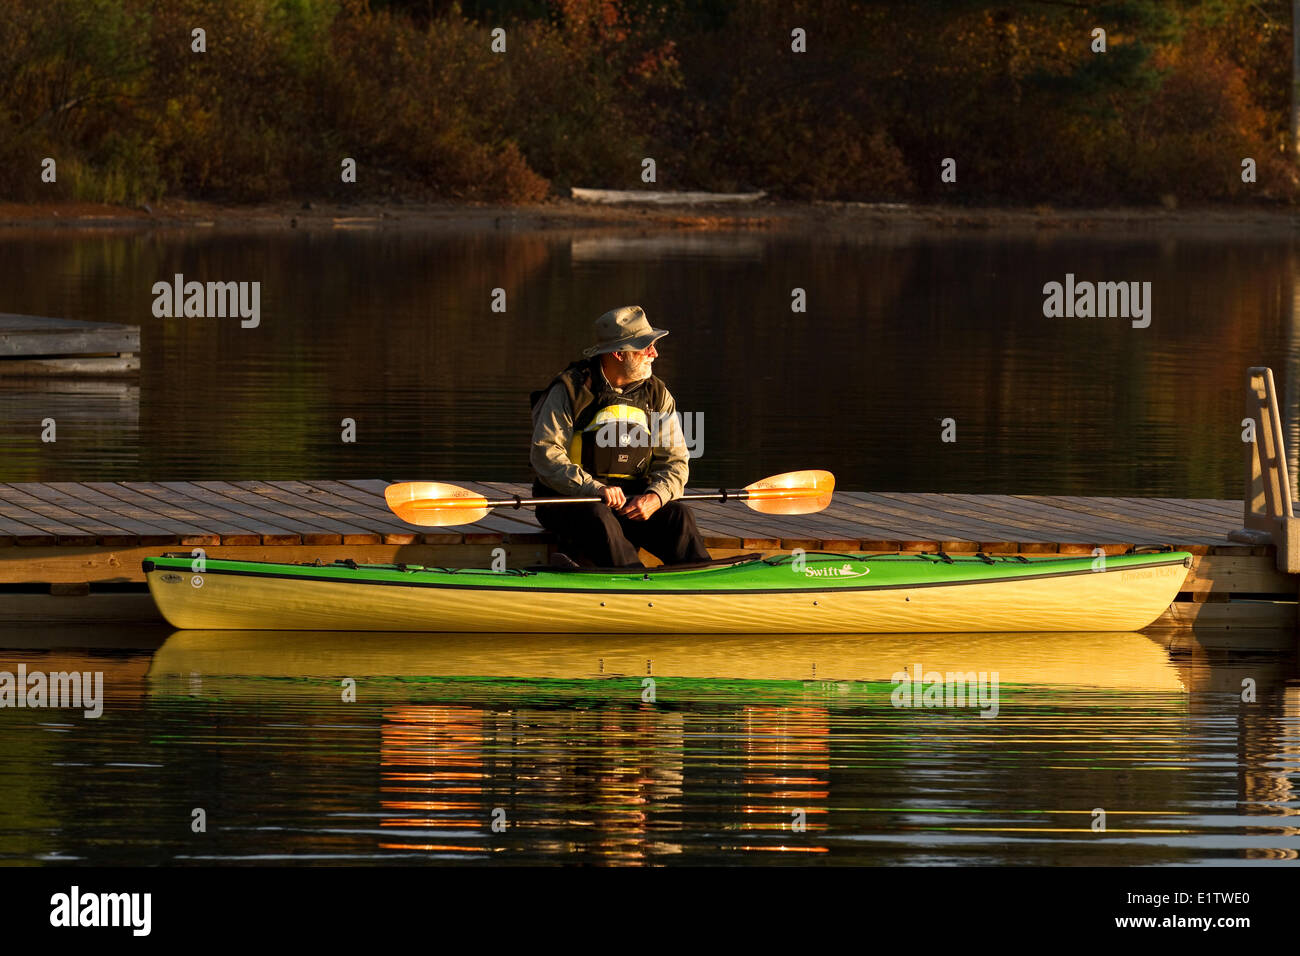 Elderly man enjoys quiet morning on dock with kayak on Oxtongue Lake, Muskoka, Ontario, Canada. - Stock Image